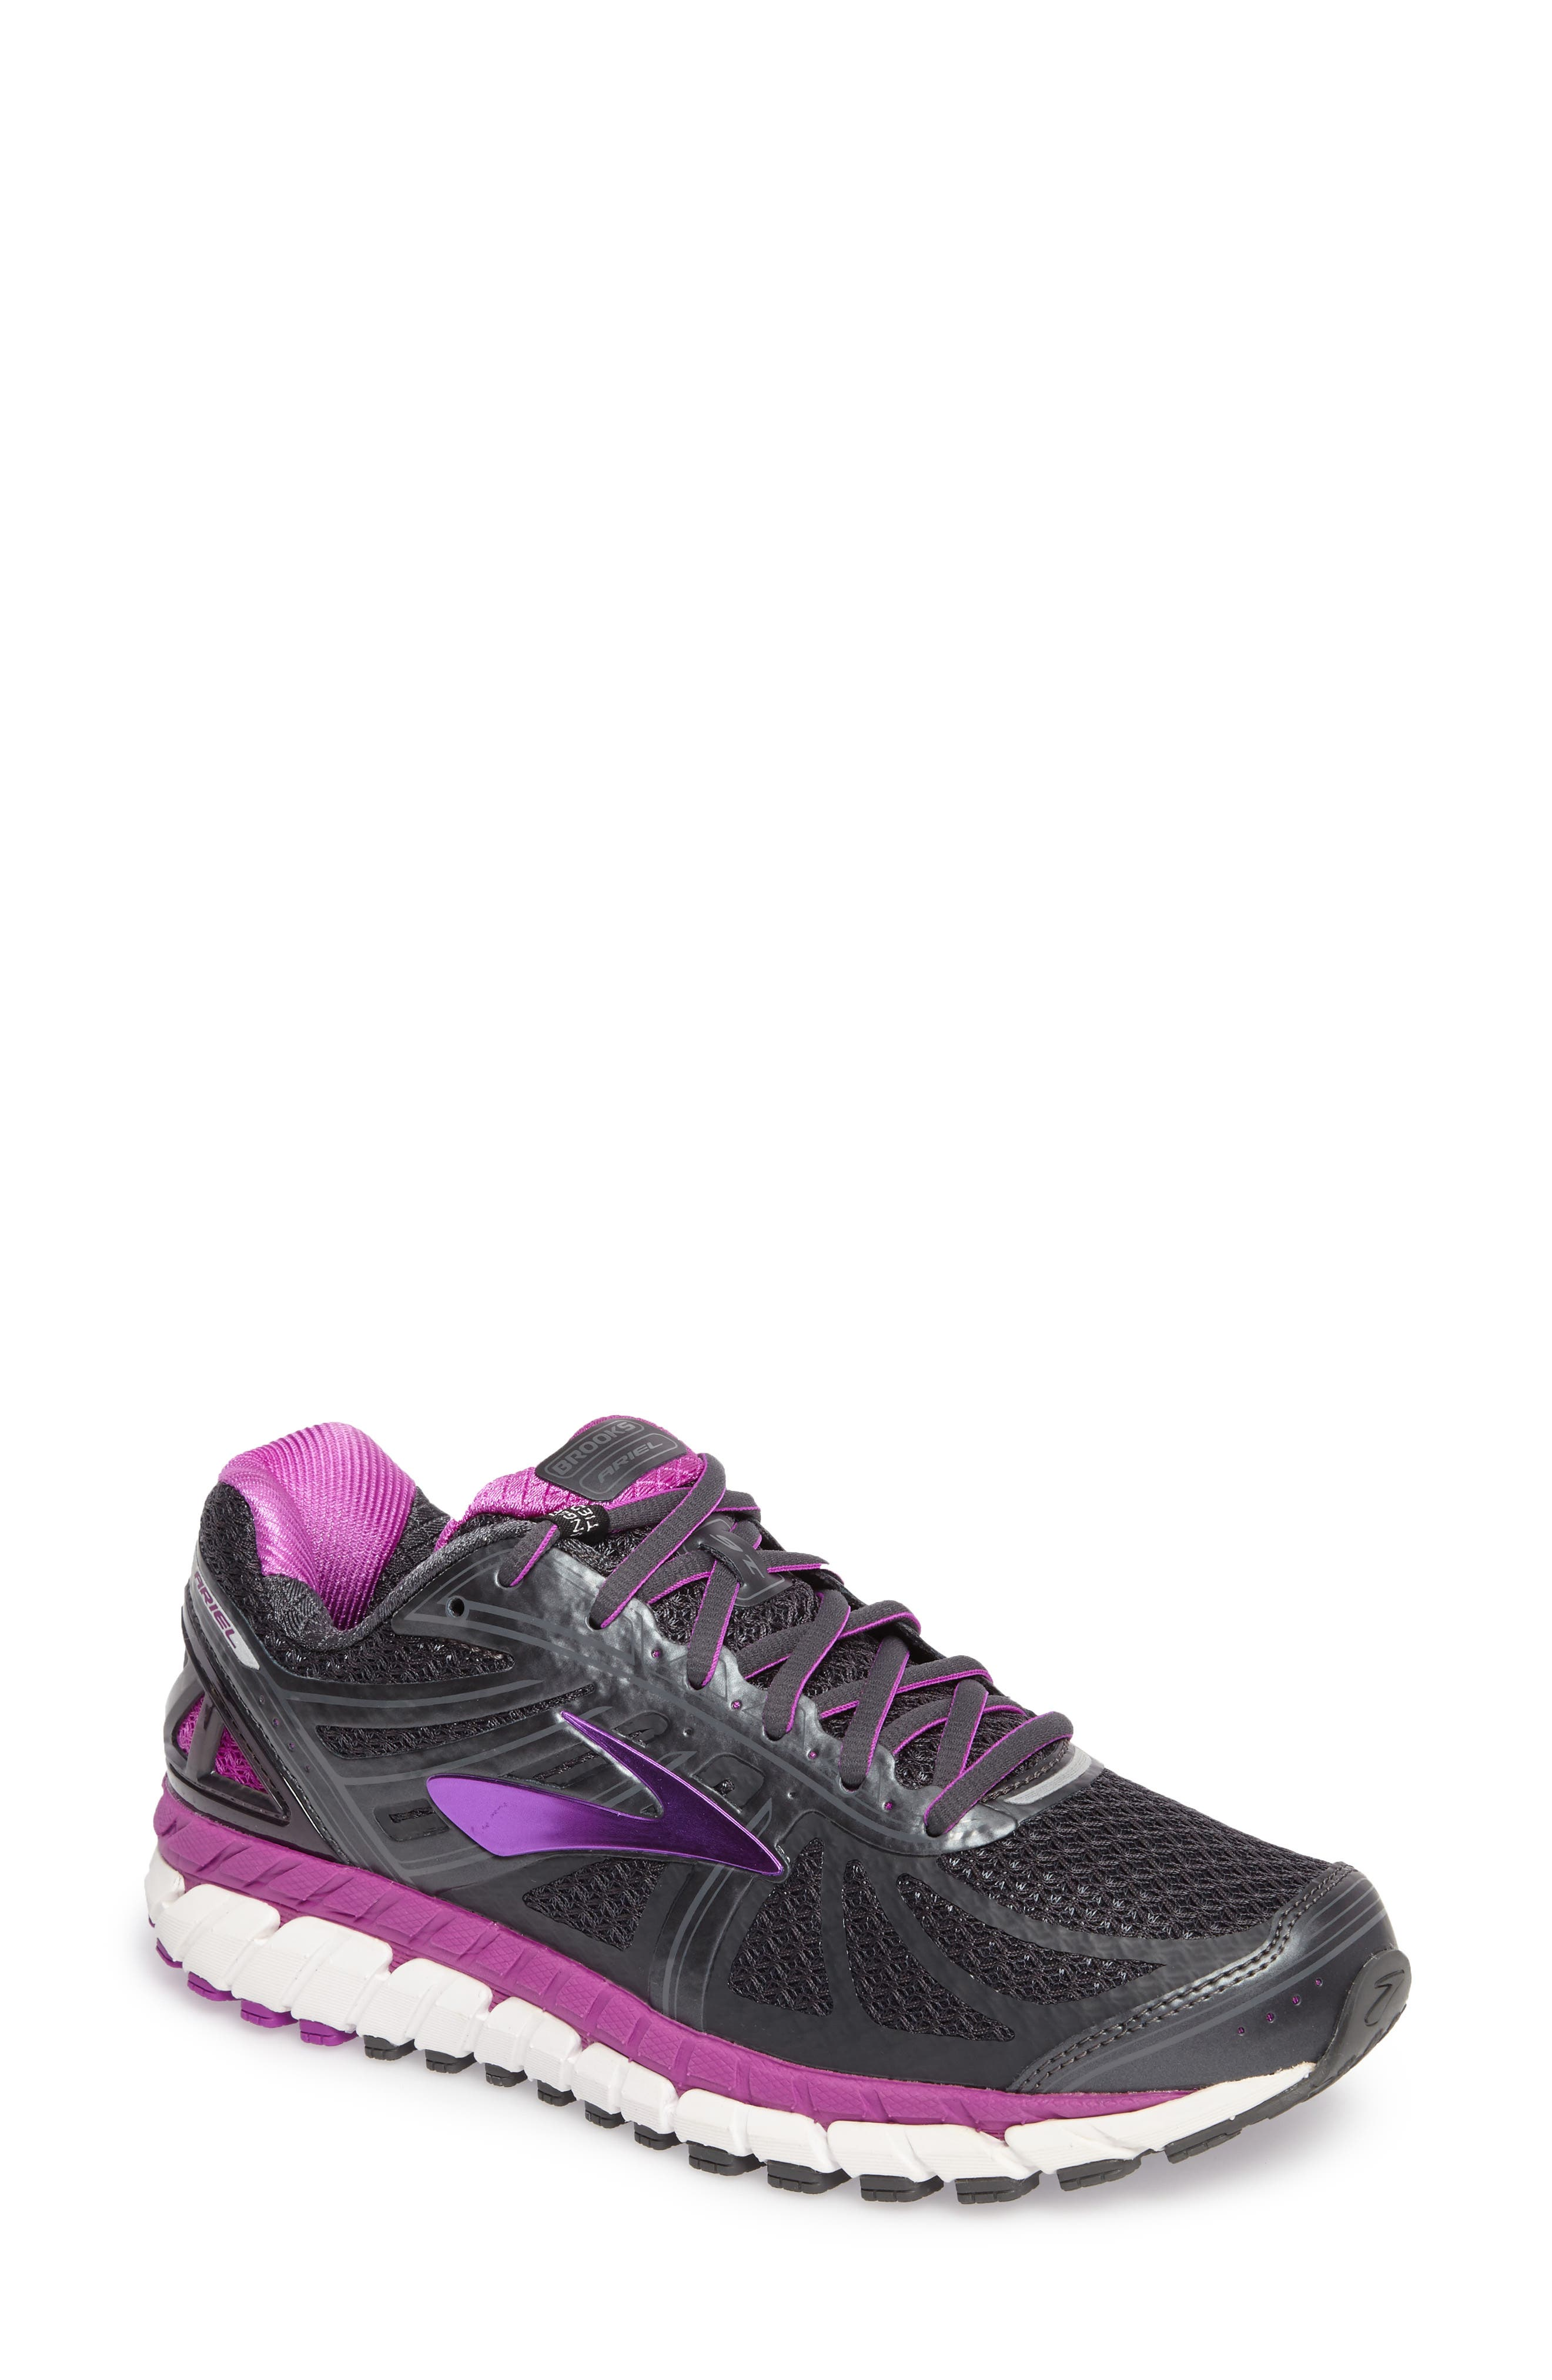 'Ariel 16' Running Shoe,                             Main thumbnail 1, color,                             Anthracite/ Purple/ Grey